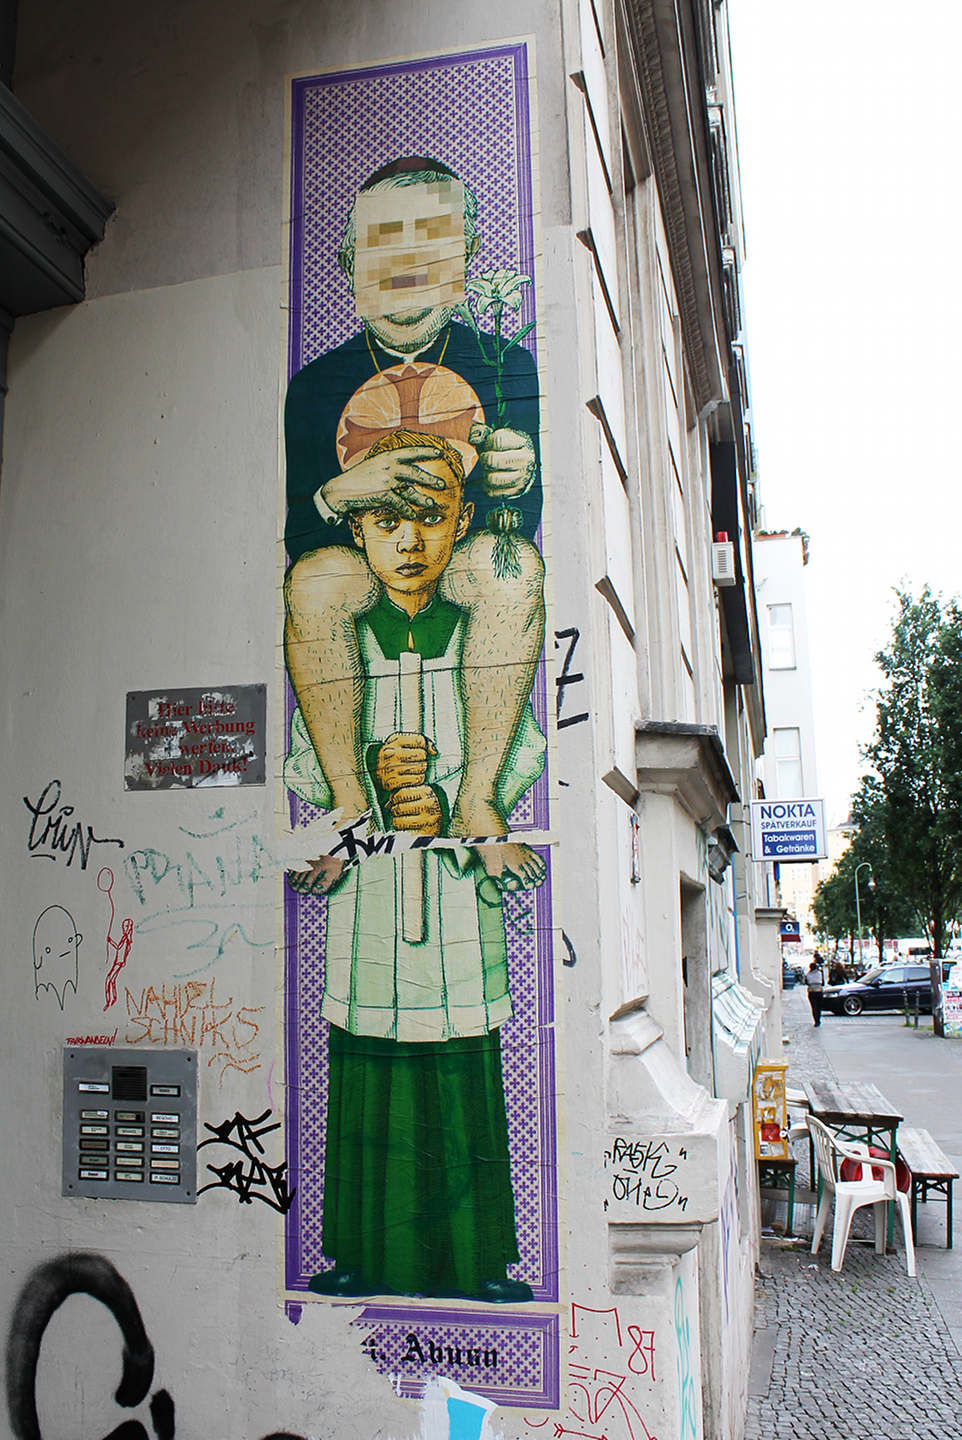 Santa Abuso of the Sant Nimmerlein series by Berlin based Street Art team Various and Gould